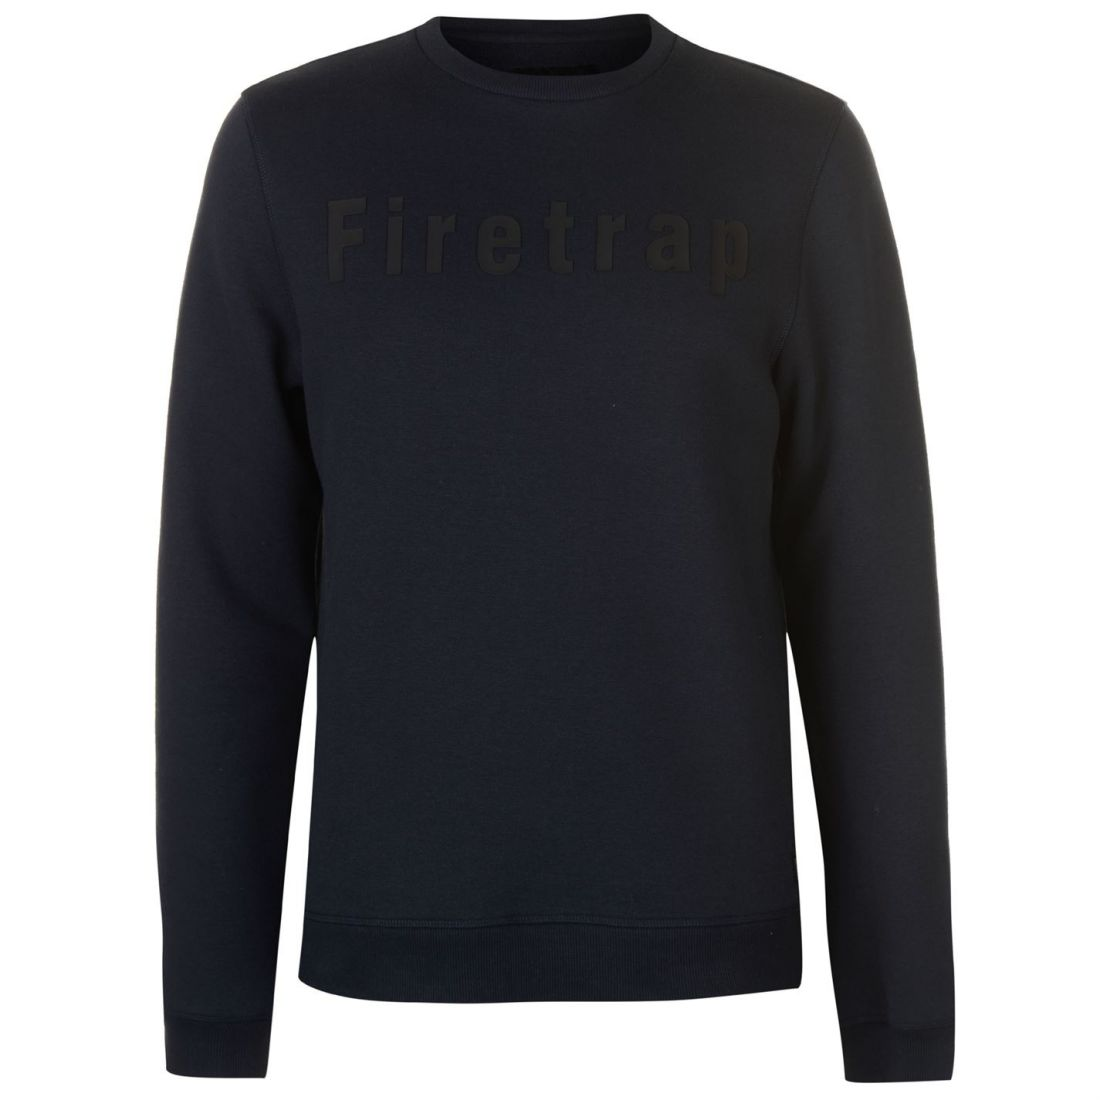 GroßZüGig Firetrap Graphic Crew Pullover Mens Gents Jumper Full Length Sleeve Neck Jersey